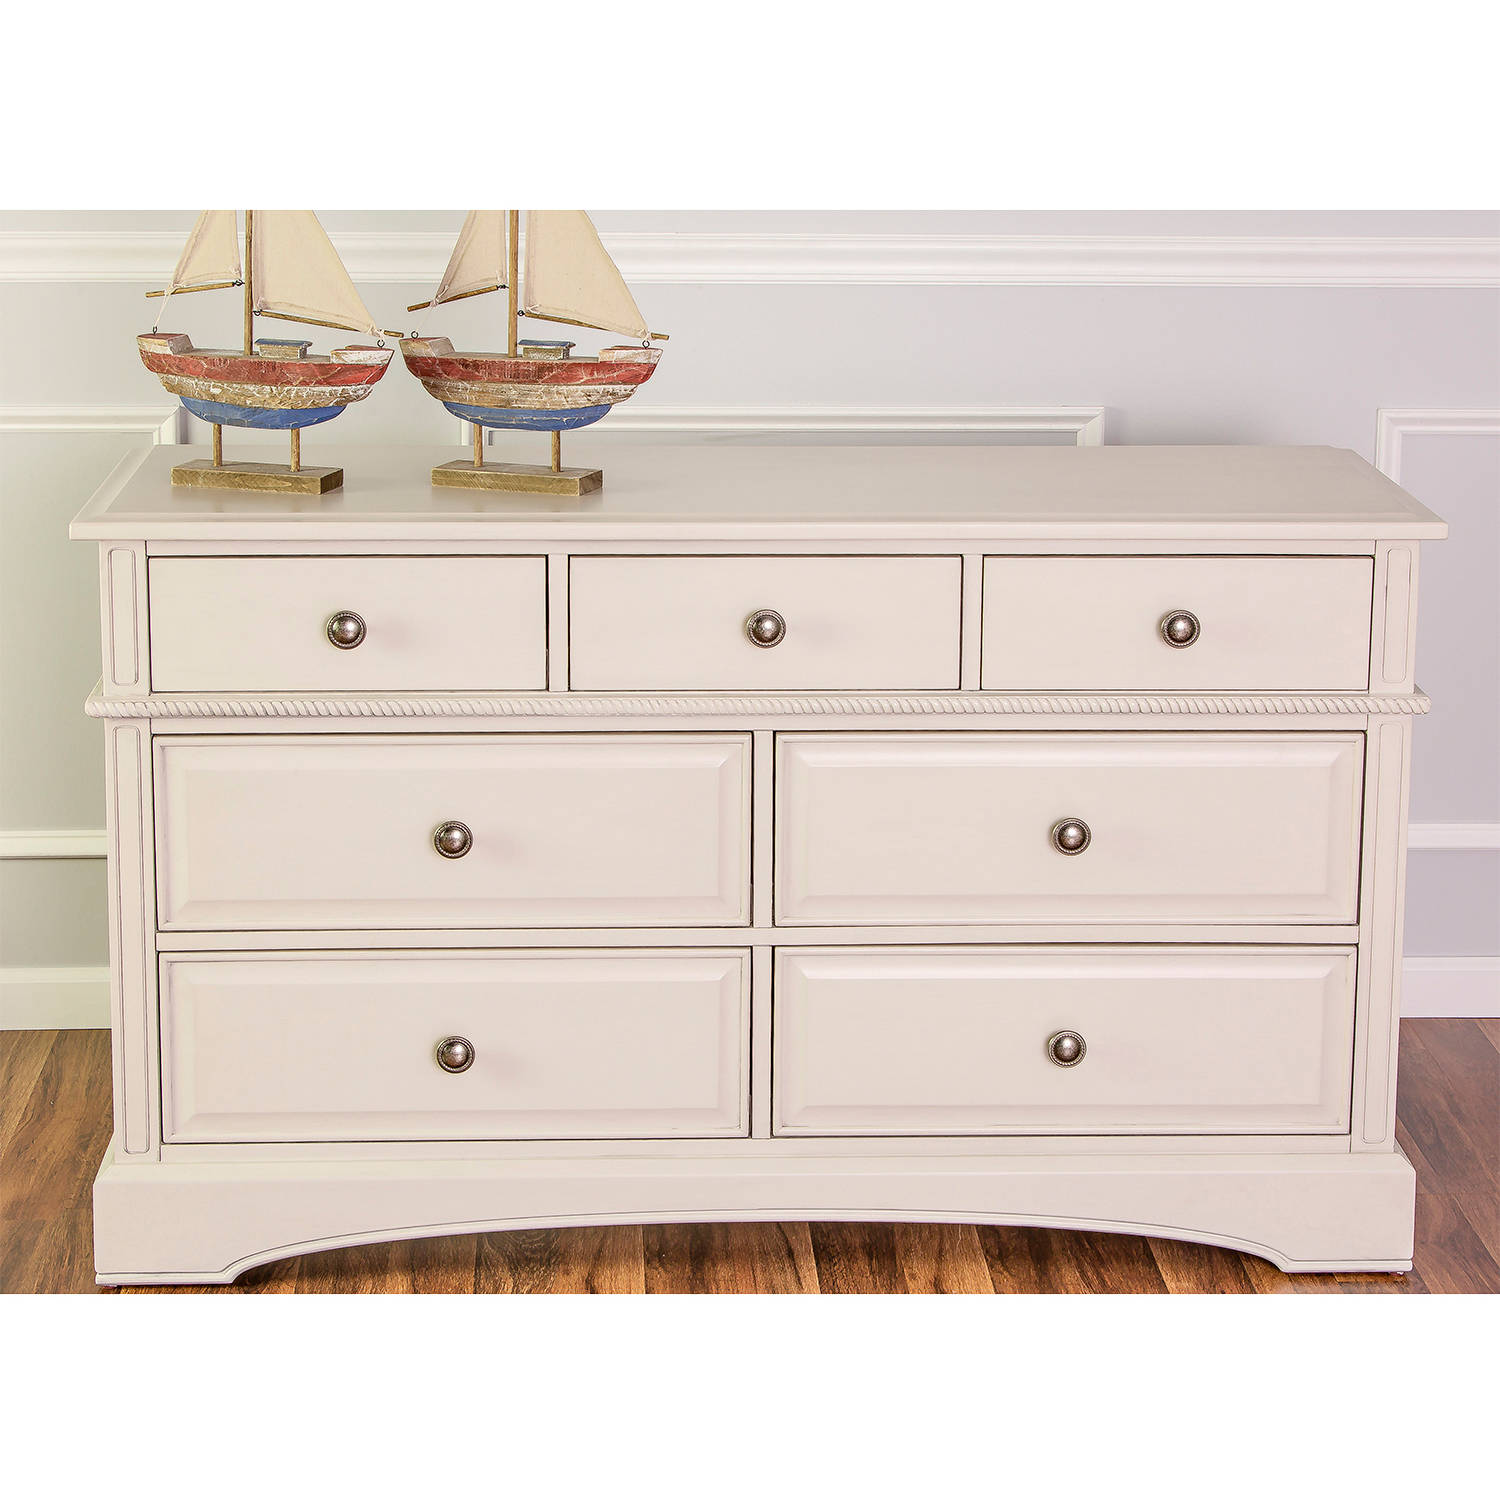 Evolur Double Drawer Dresser in Antique White